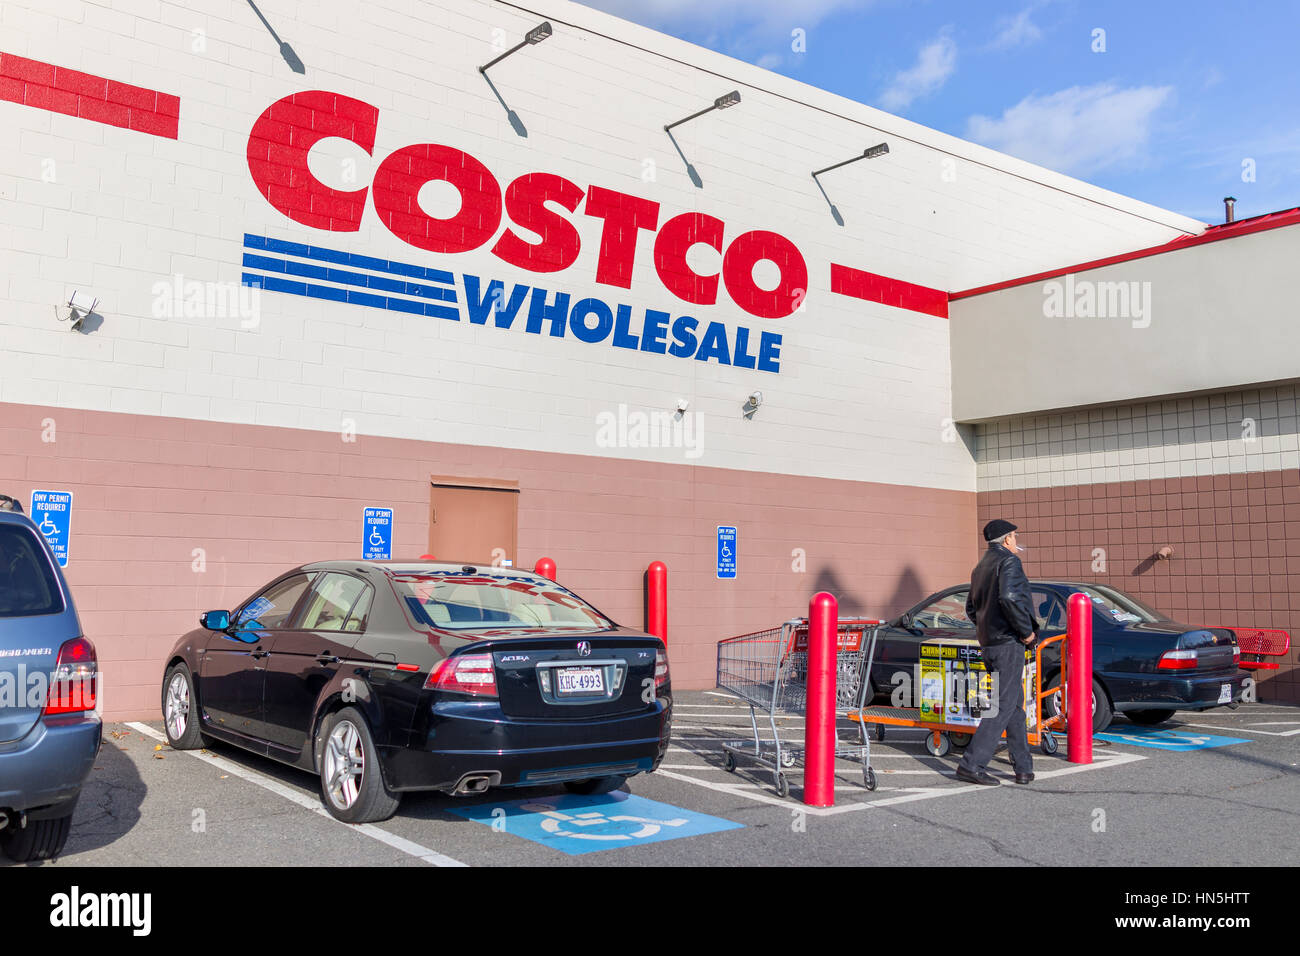 fairfax usa costco whole sign on store in fairfax usa 3 2016 costco whole sign on store in virginia parked cars and customers walking